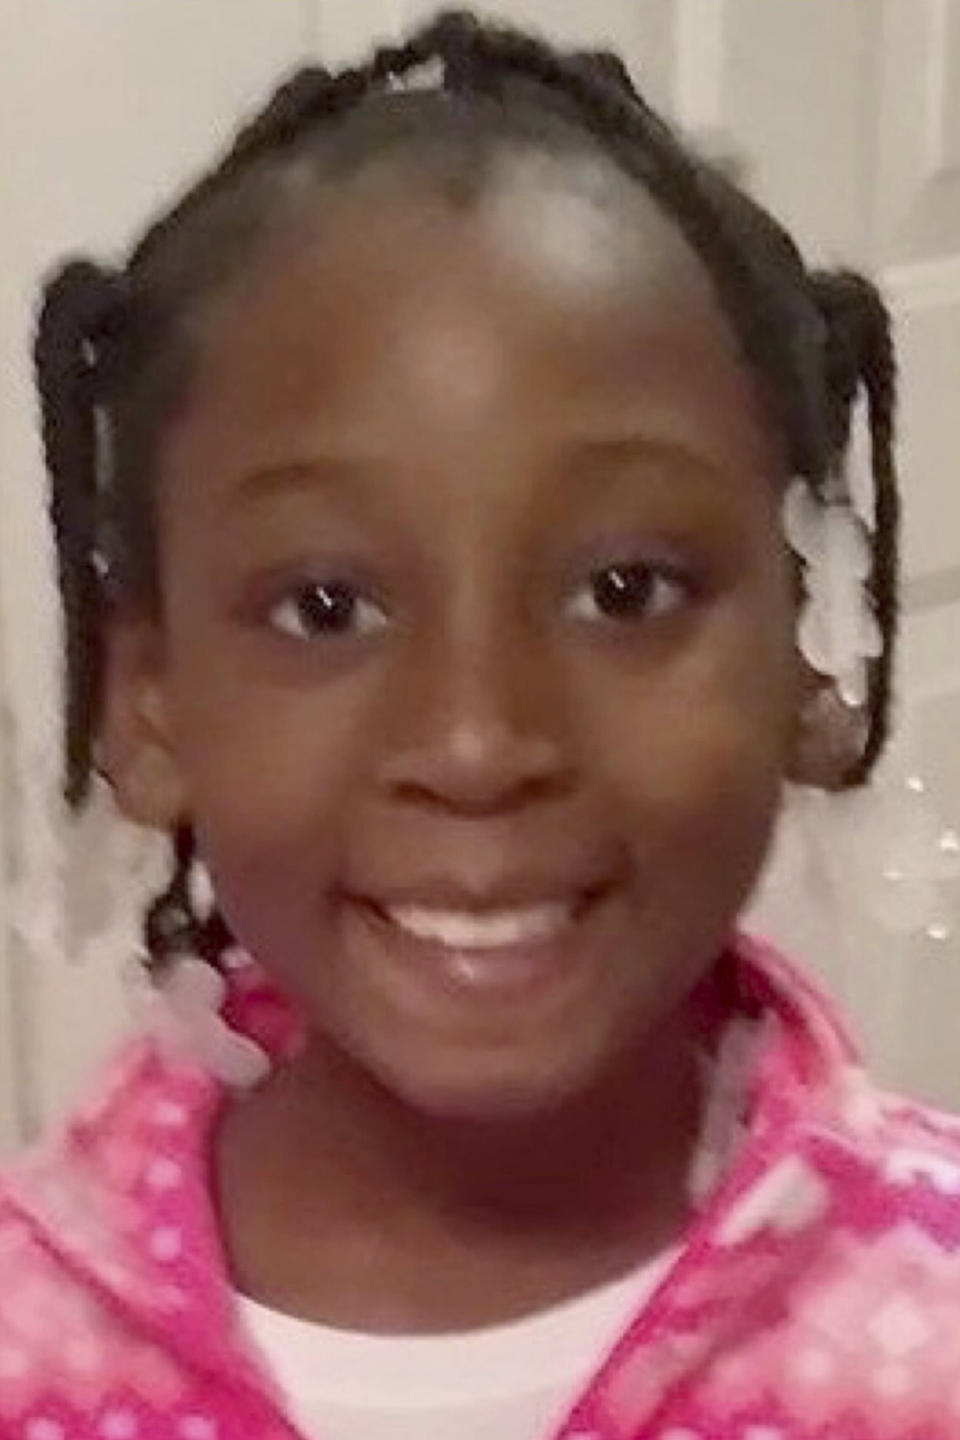 Trinity Love Jones, who was found dead in a duffel bag along a suburban Los Angeles equestrian trail on March 5, 2019. (Los Angeles County Sheriff's Office via AP, File)